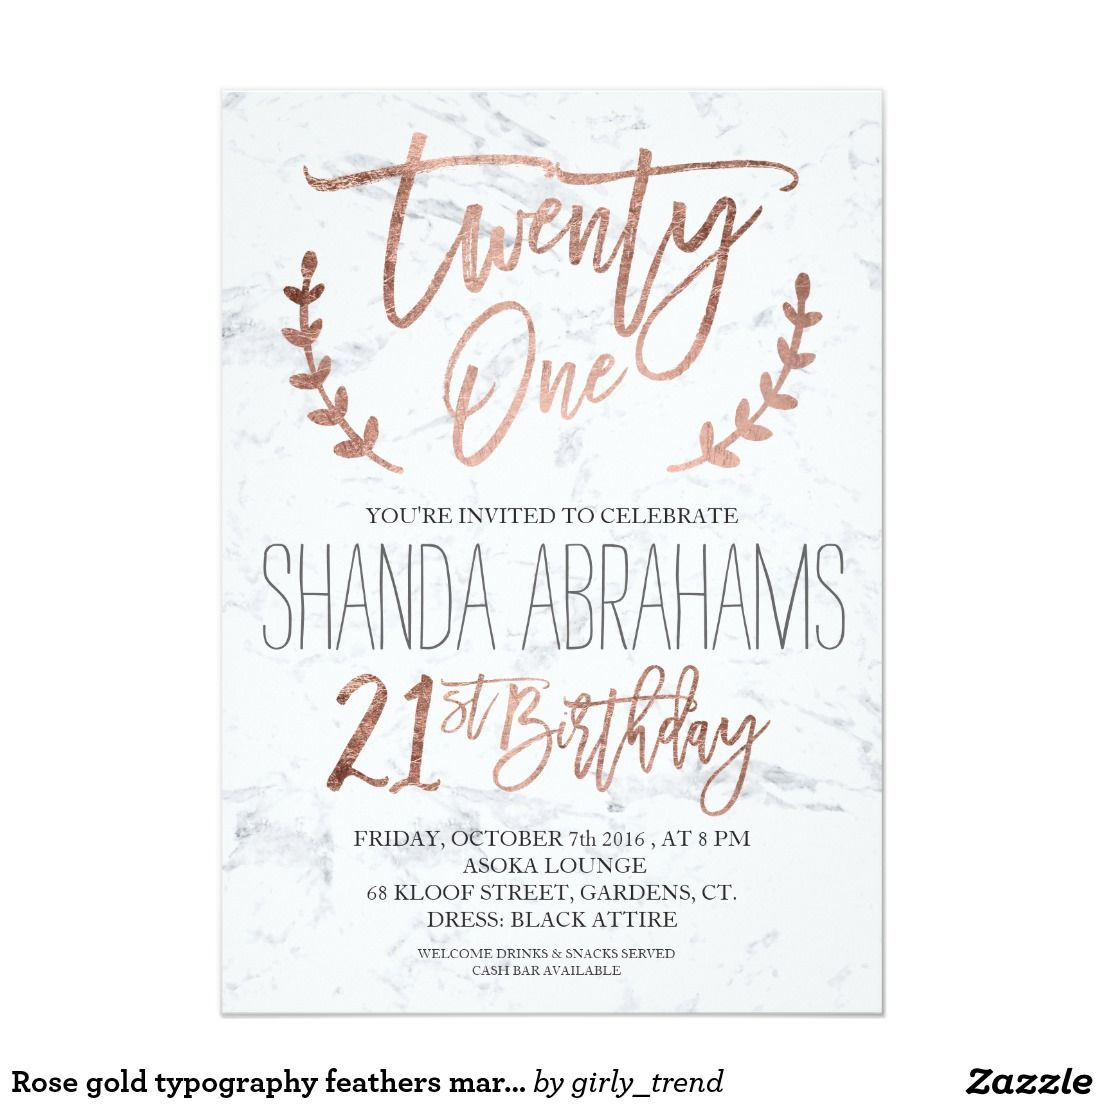 Rose gold typography feathers marble 21st Birthday Card | Motivation ...